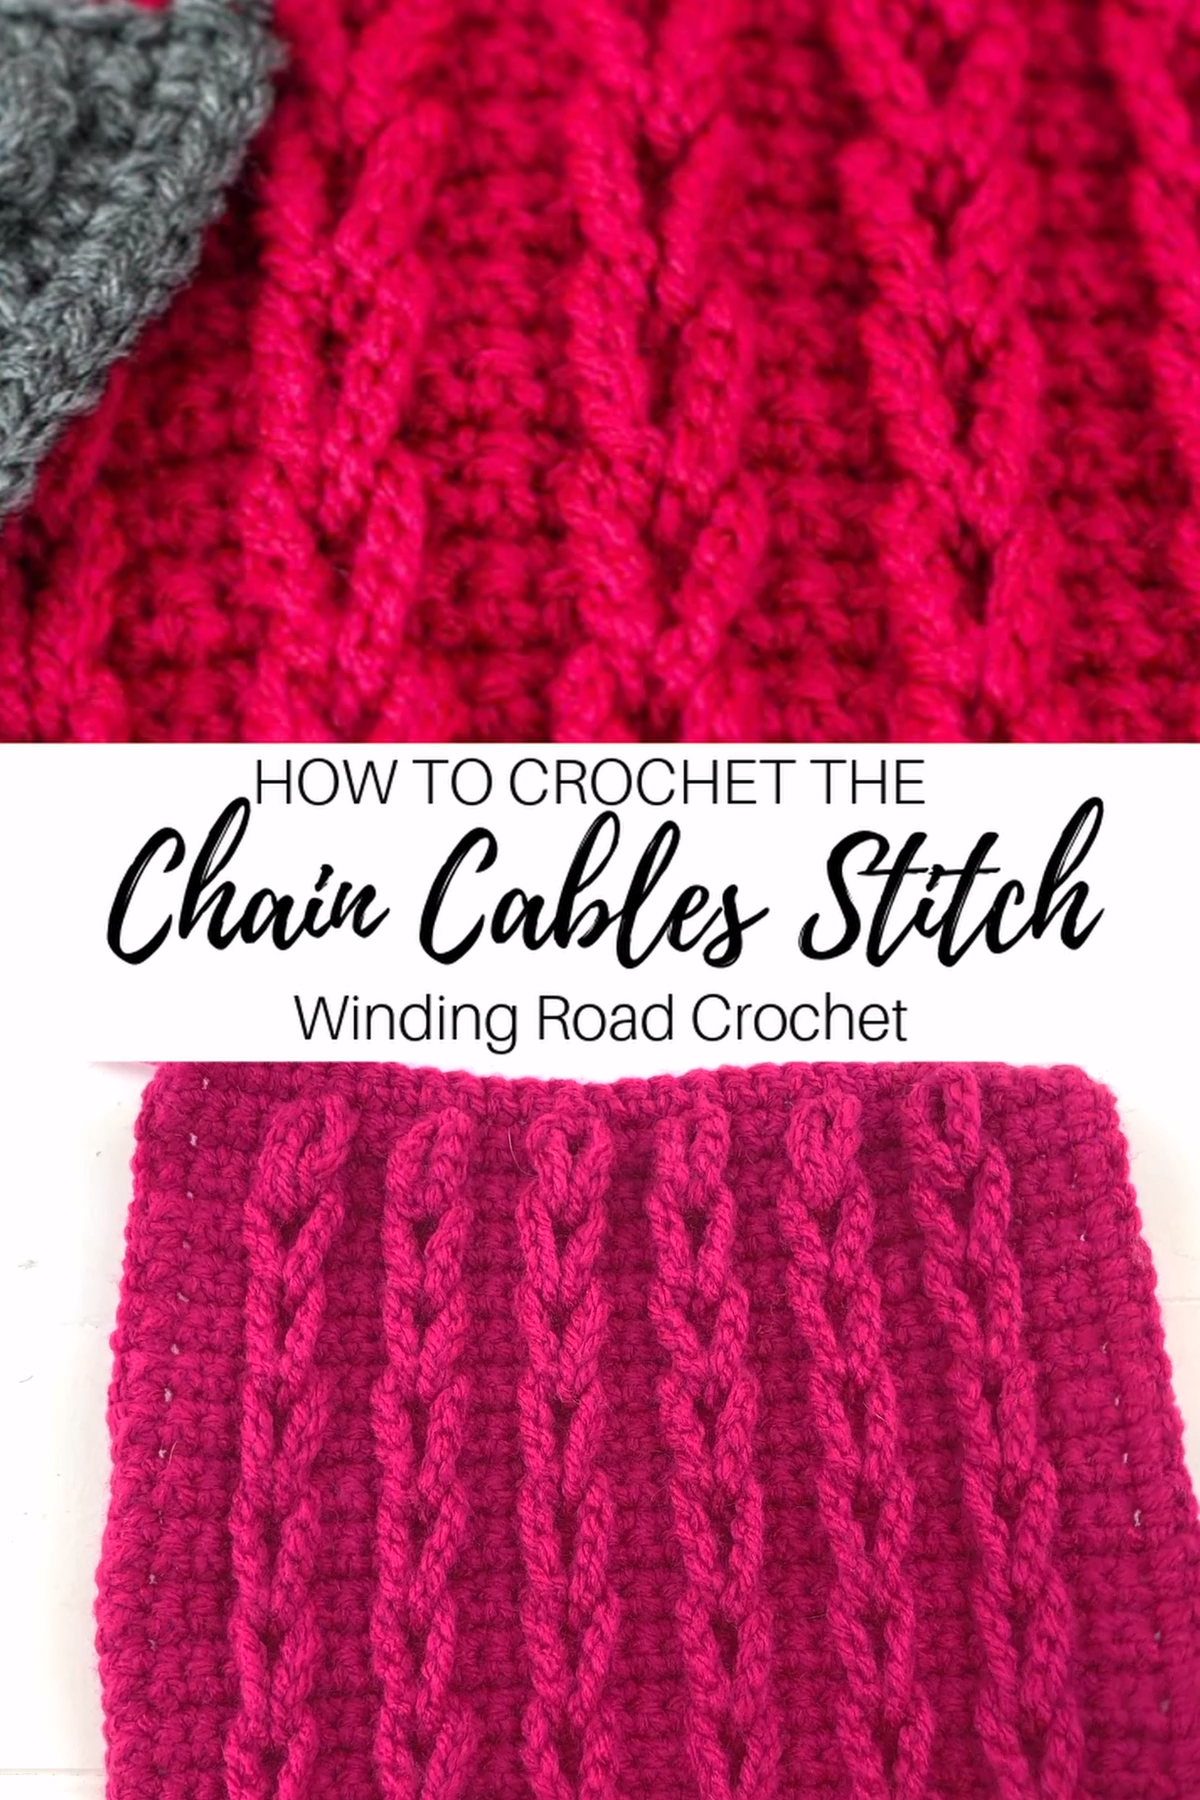 How to Crochet: Chain Cables Video Tutorial #crochetstitchestutorial